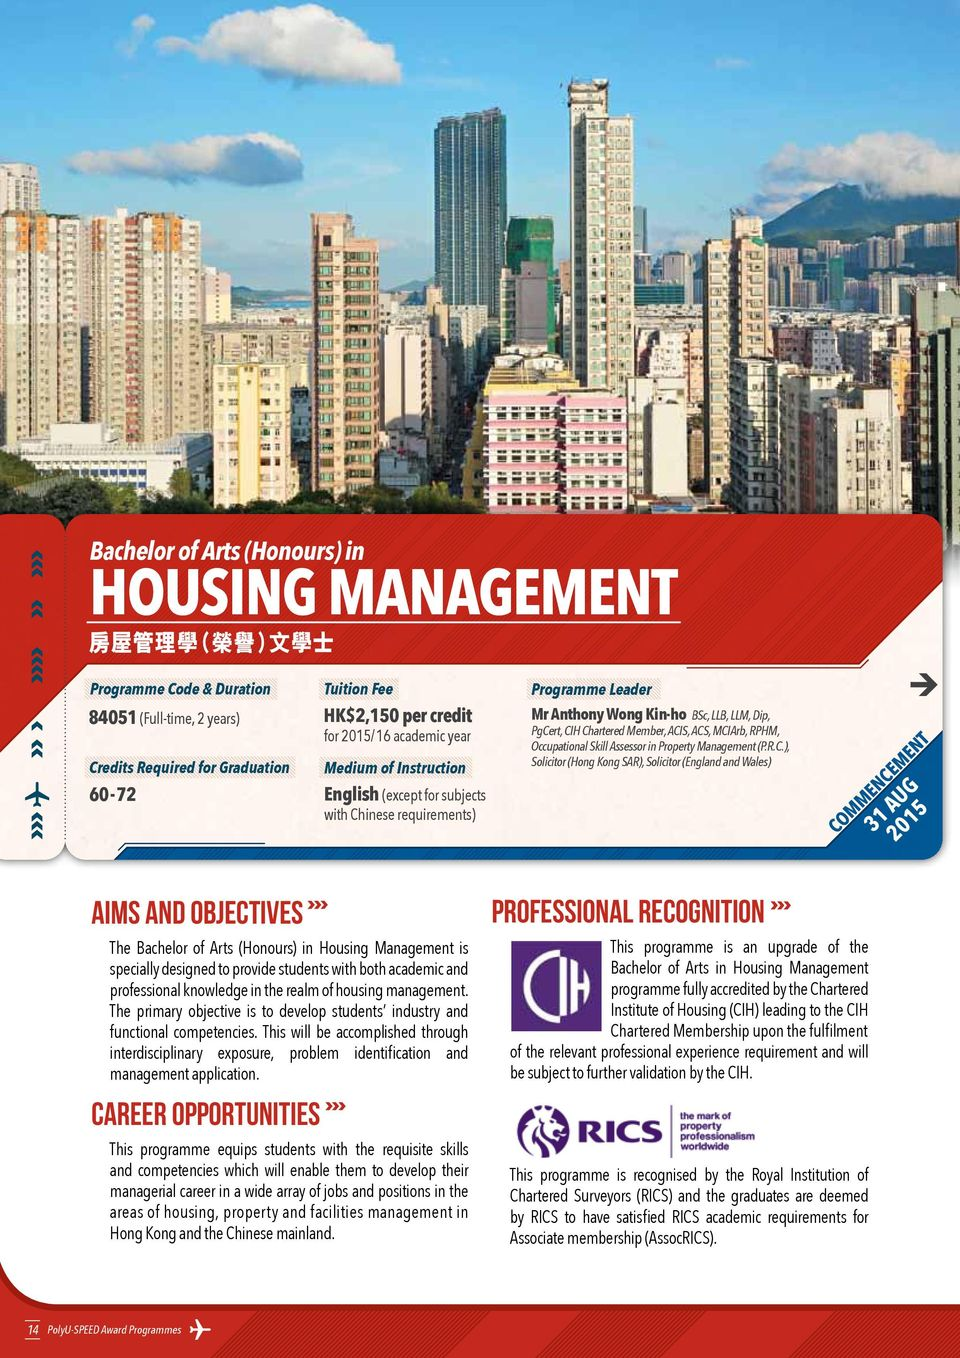 ACIS, ACS, MCIArb, RPHM, Occupational Skill Assessor in Property Management (P.R.C.), Solicitor (Hong Kong SAR), Solicitor (England and Wales) COMMENCEMENT 31 AUG 2015 Aims and Objectives The